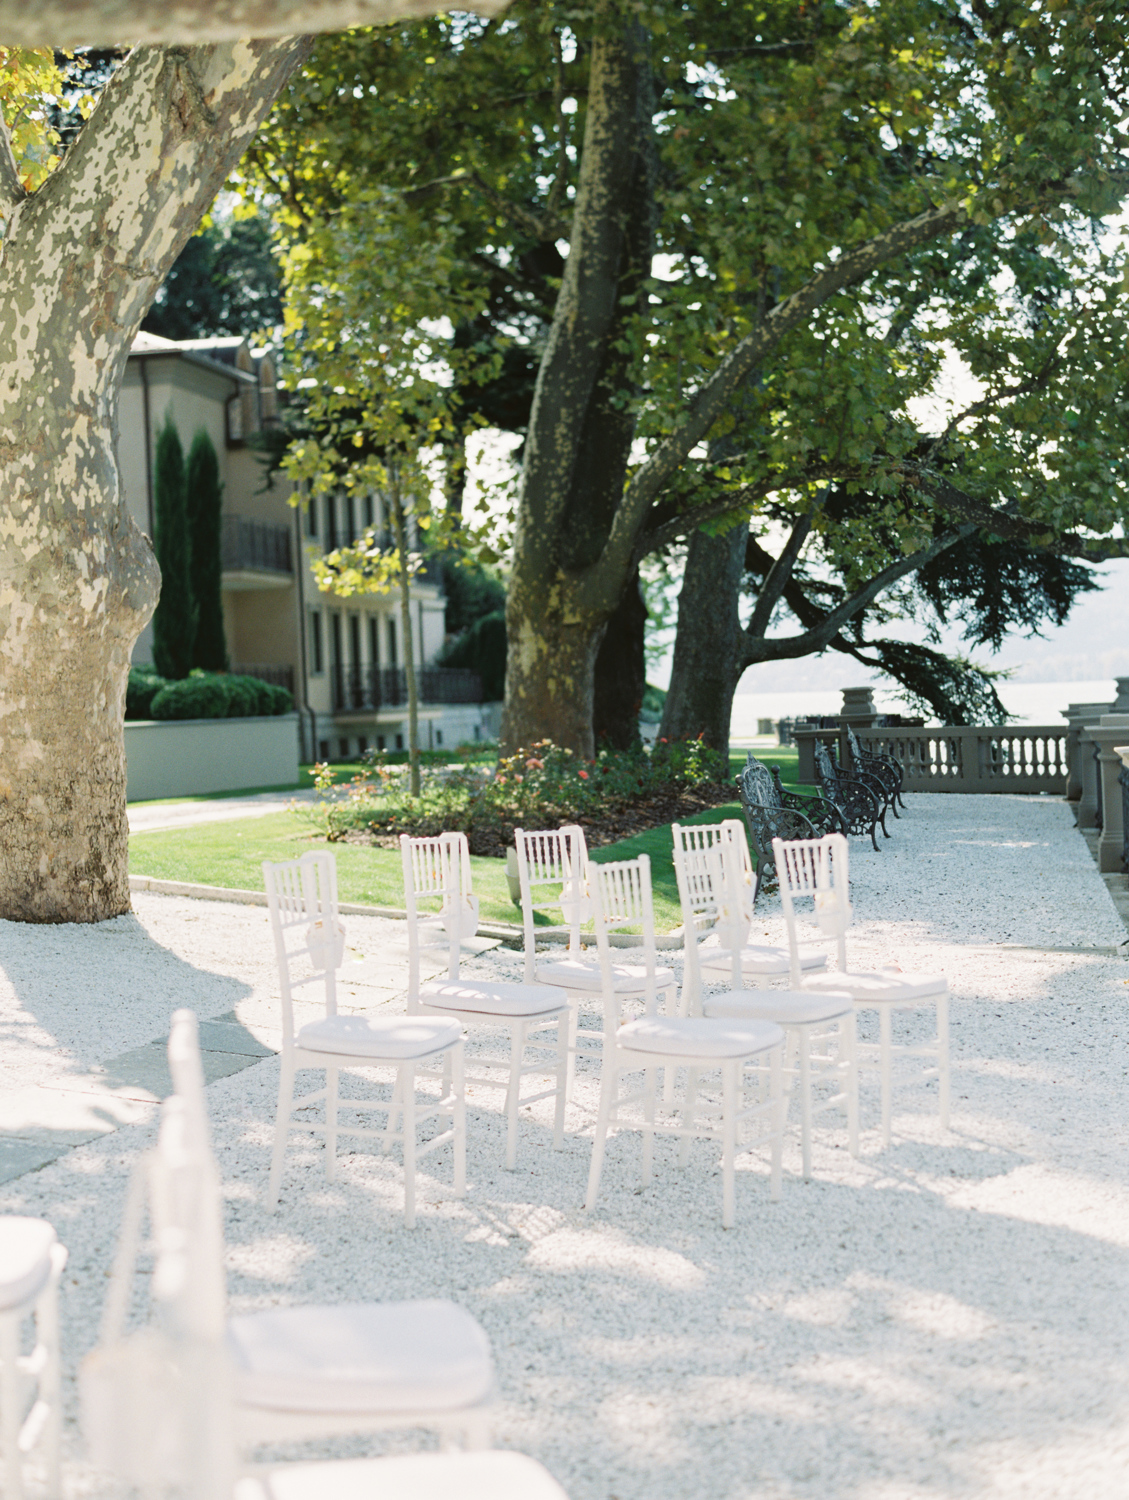 Castadiva resort lago di Como wedding